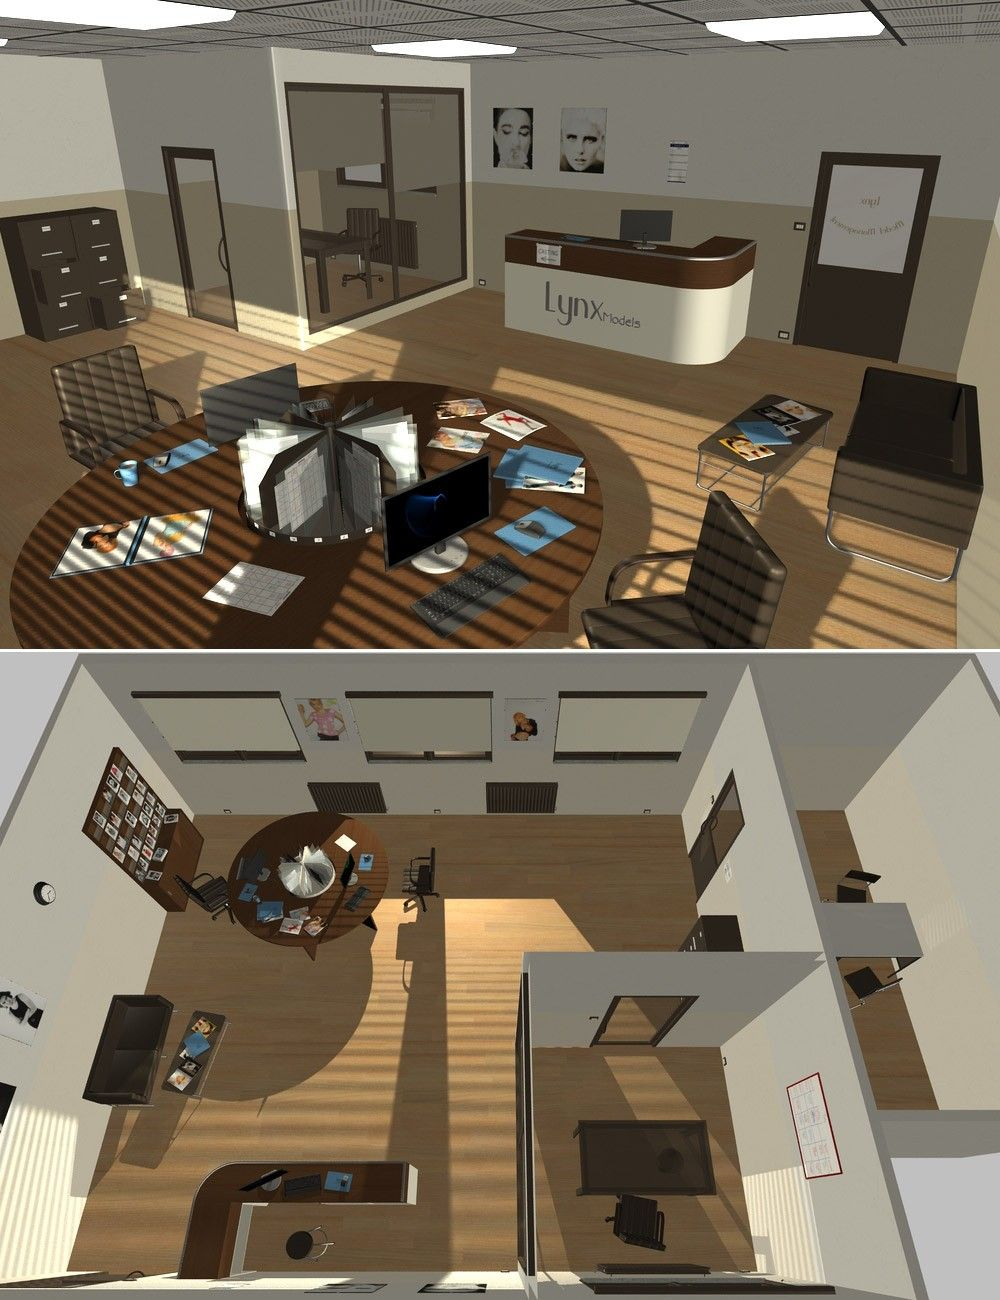 Interiors The Model Agency 3d Models And 3d Software By Daz 3d